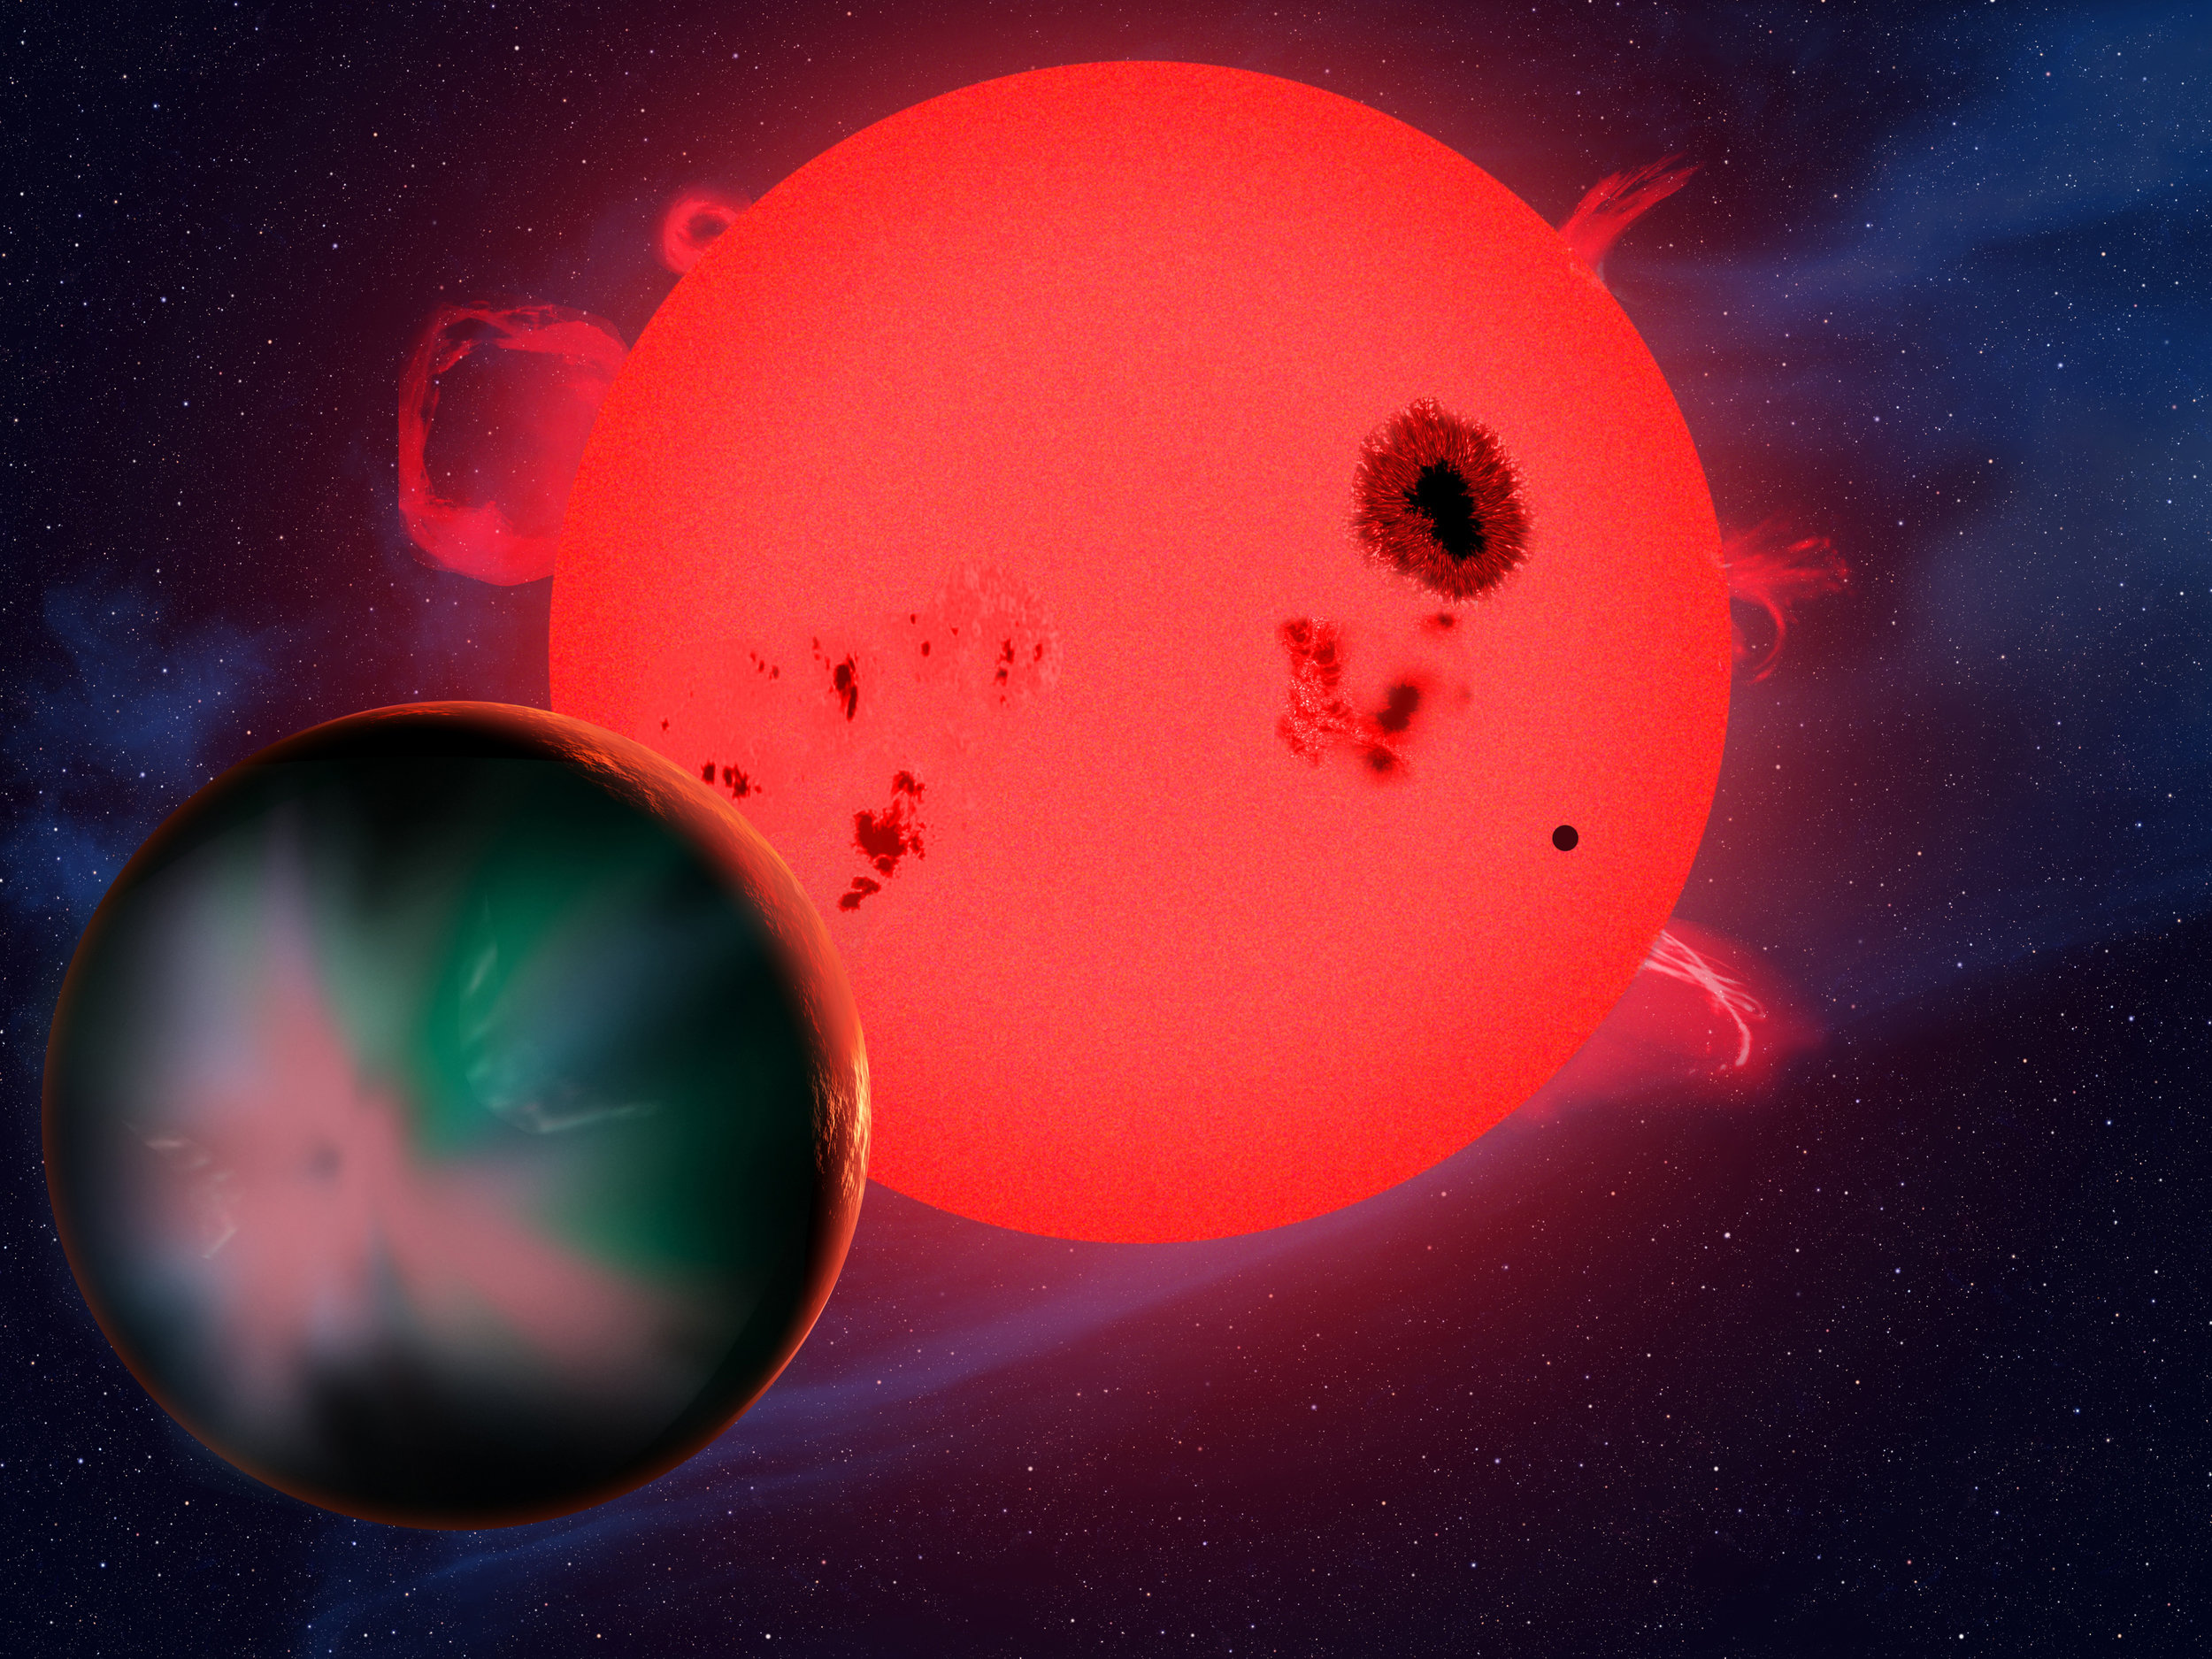 The planet GJ 1214 b orbits a small, red dwarf star.